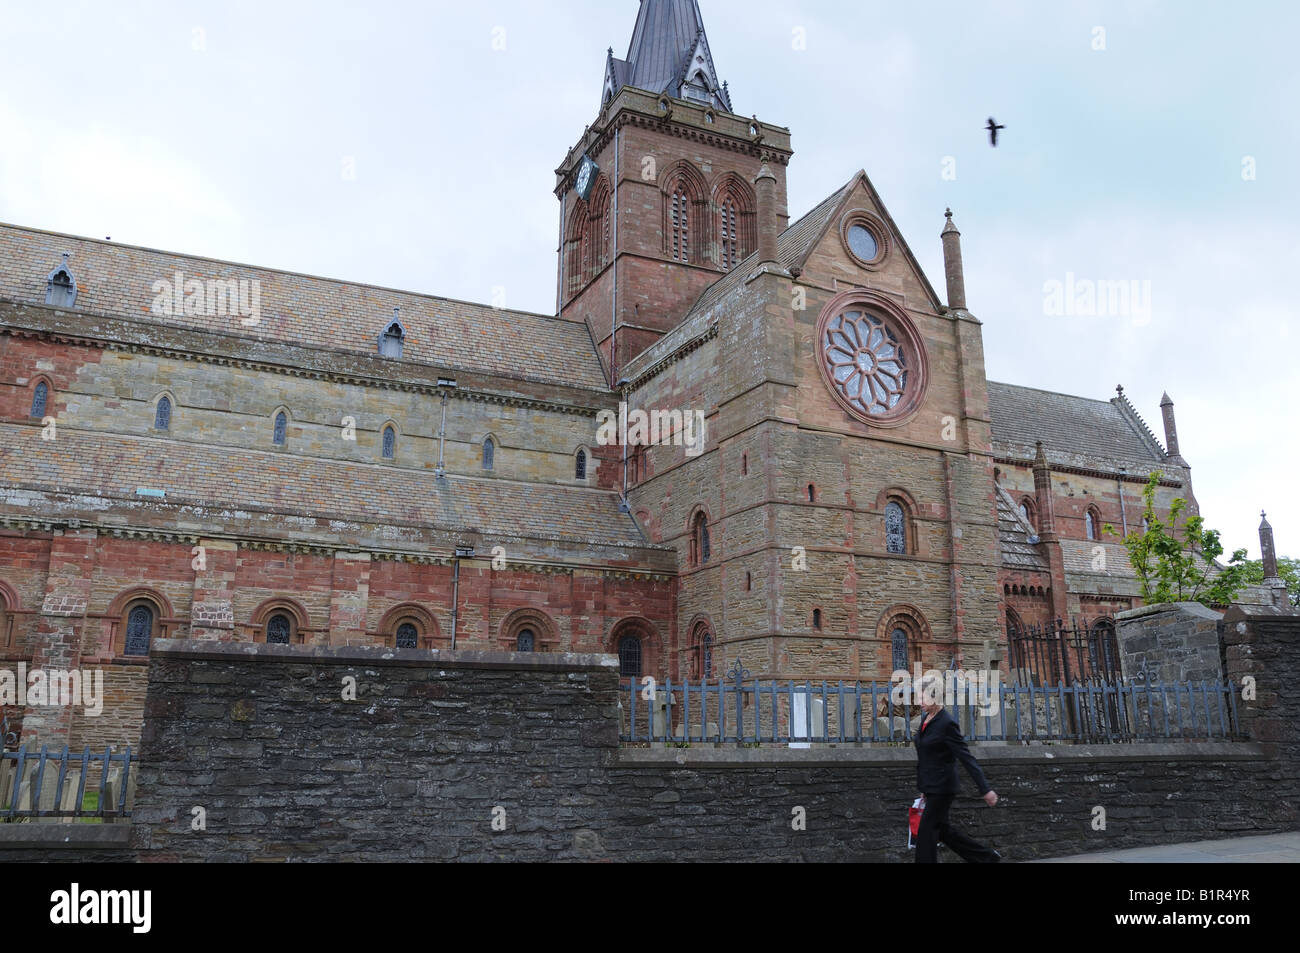 Parts of St. Magnus Cathedral in Kirkwall, the capital of Orkney, date from the 12th century. - Stock Image